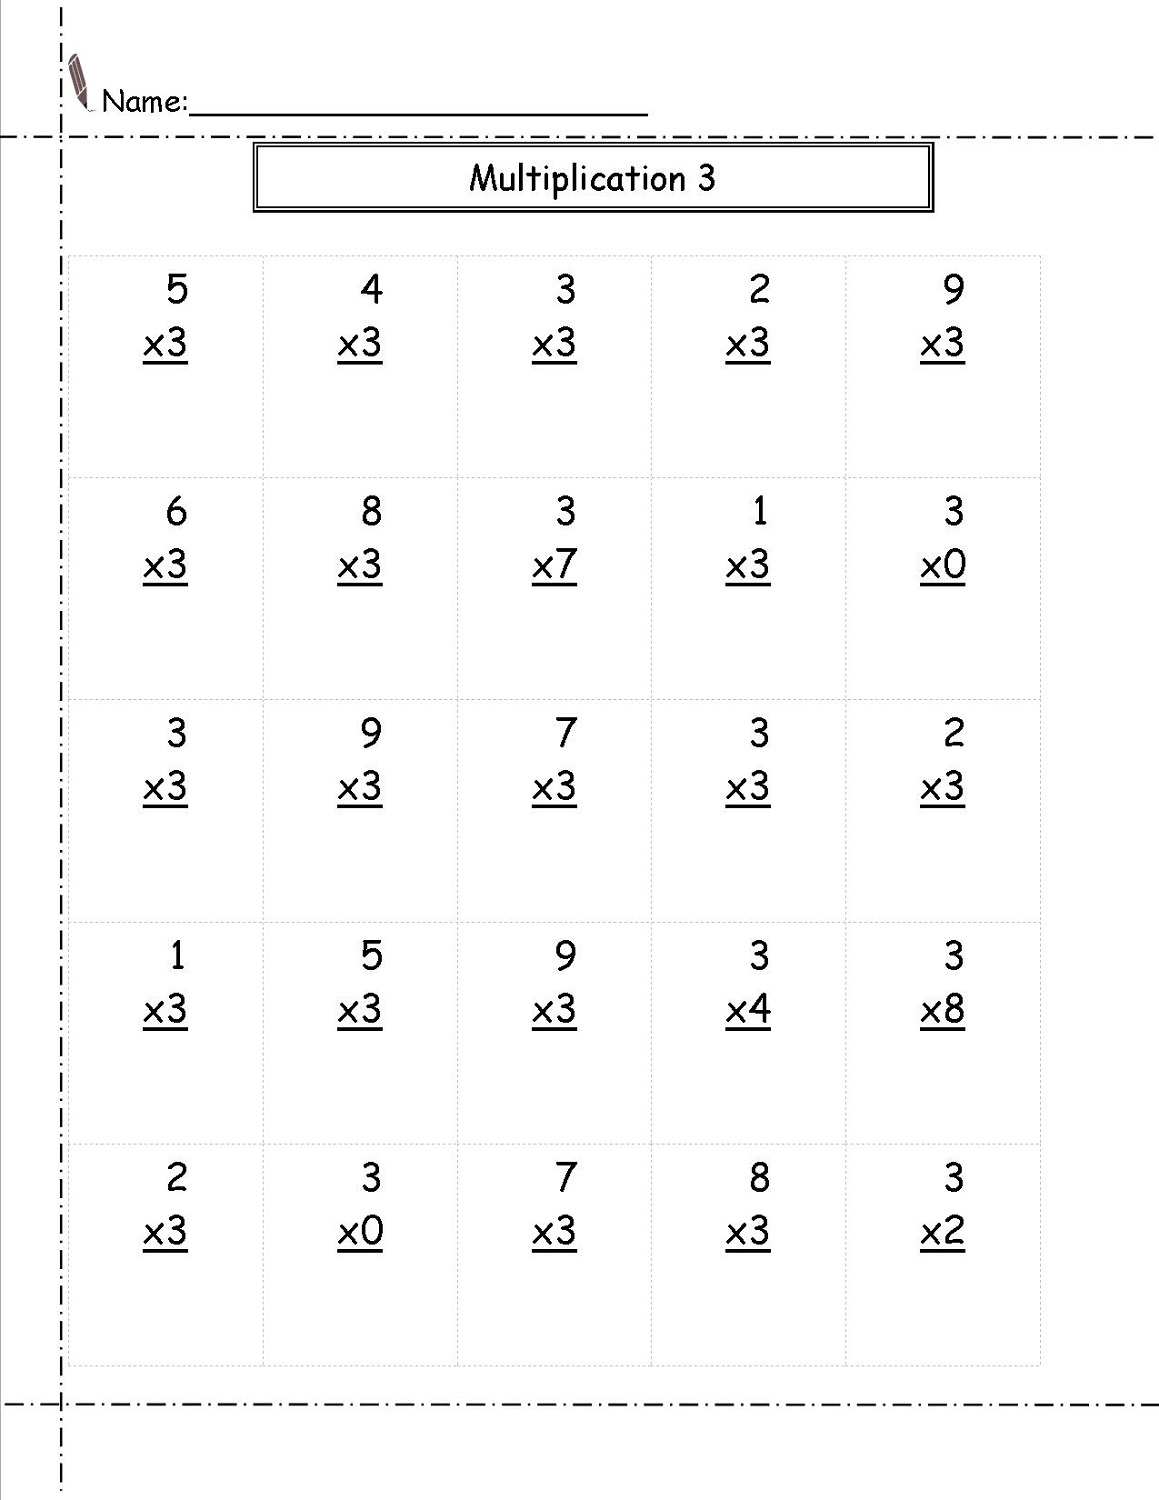 multiply by 3 worksheet free